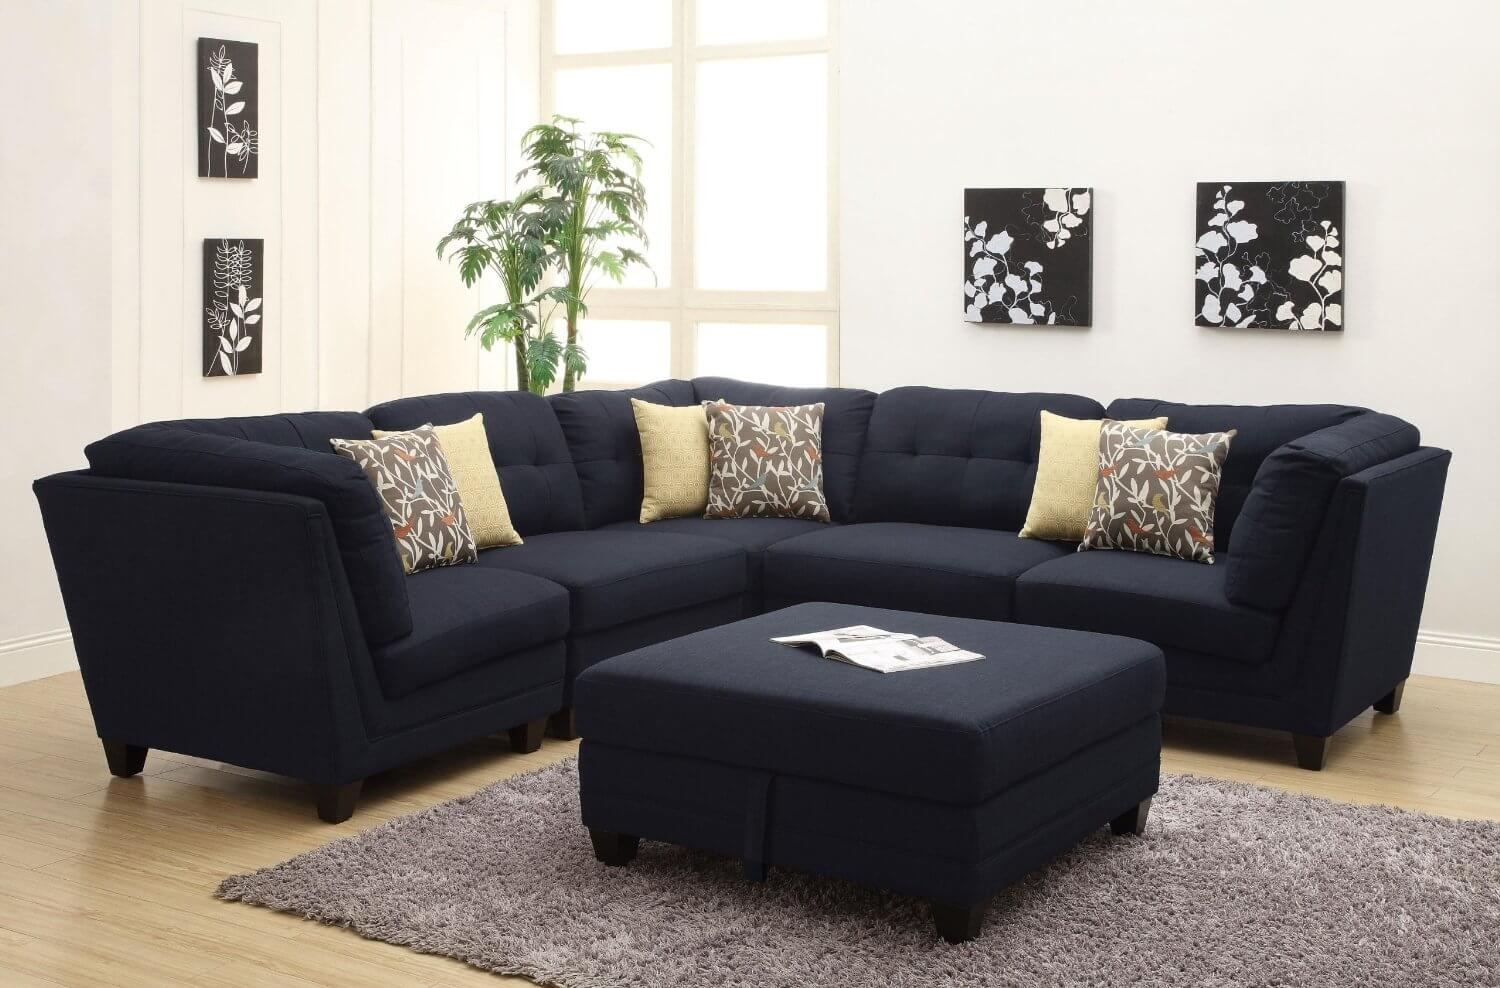 100 Awesome Sectional Sofas Under $1,000 (2018) In Eco Friendly Sectional Sofas (Gallery 5 of 10)